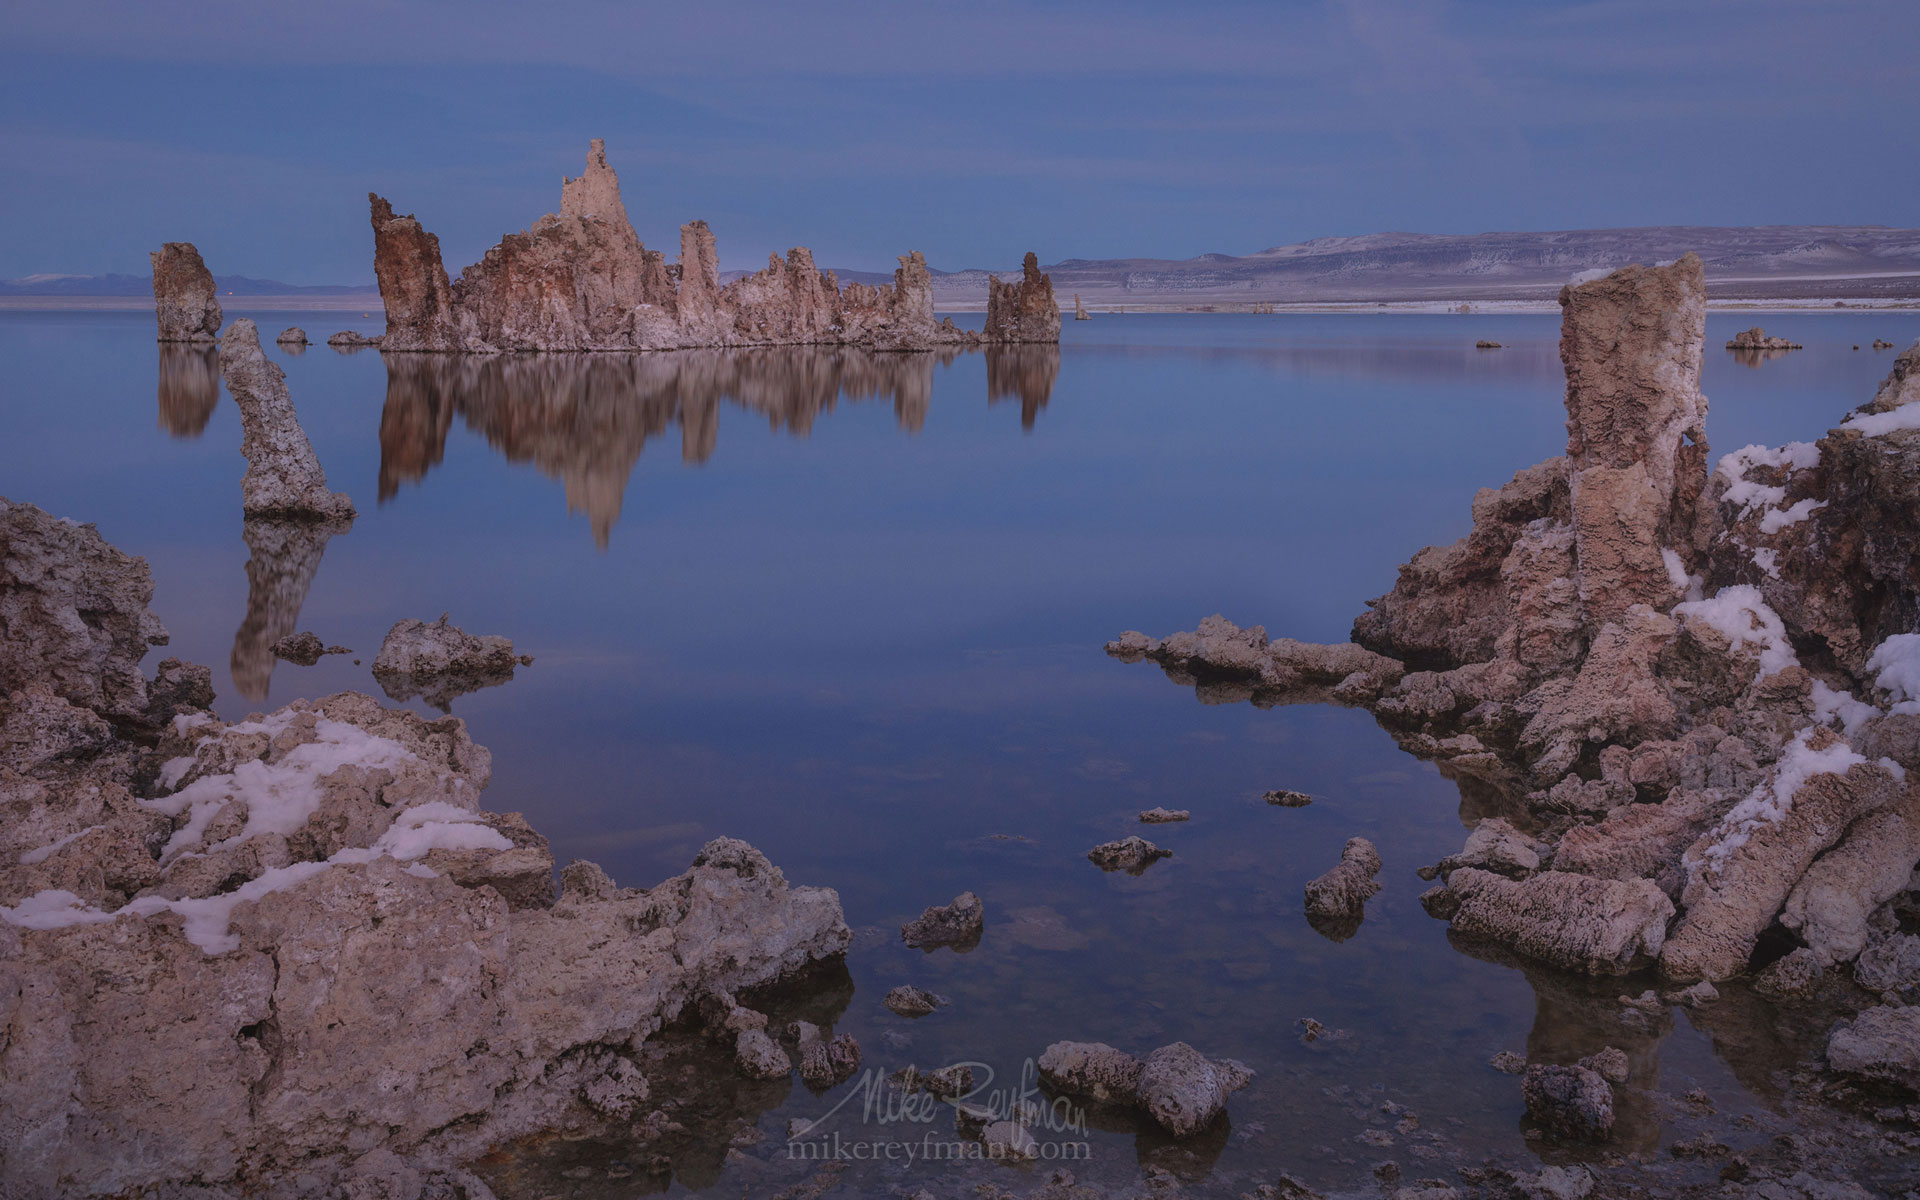 Mono Lake, Tufa State Natural Reserve, Eastern Sierra, California, USA ML1-MRN3X0688 - Mono Lake Tufa State Natural Reserve, Eastern Sierra, California - Mike Reyfman Photography